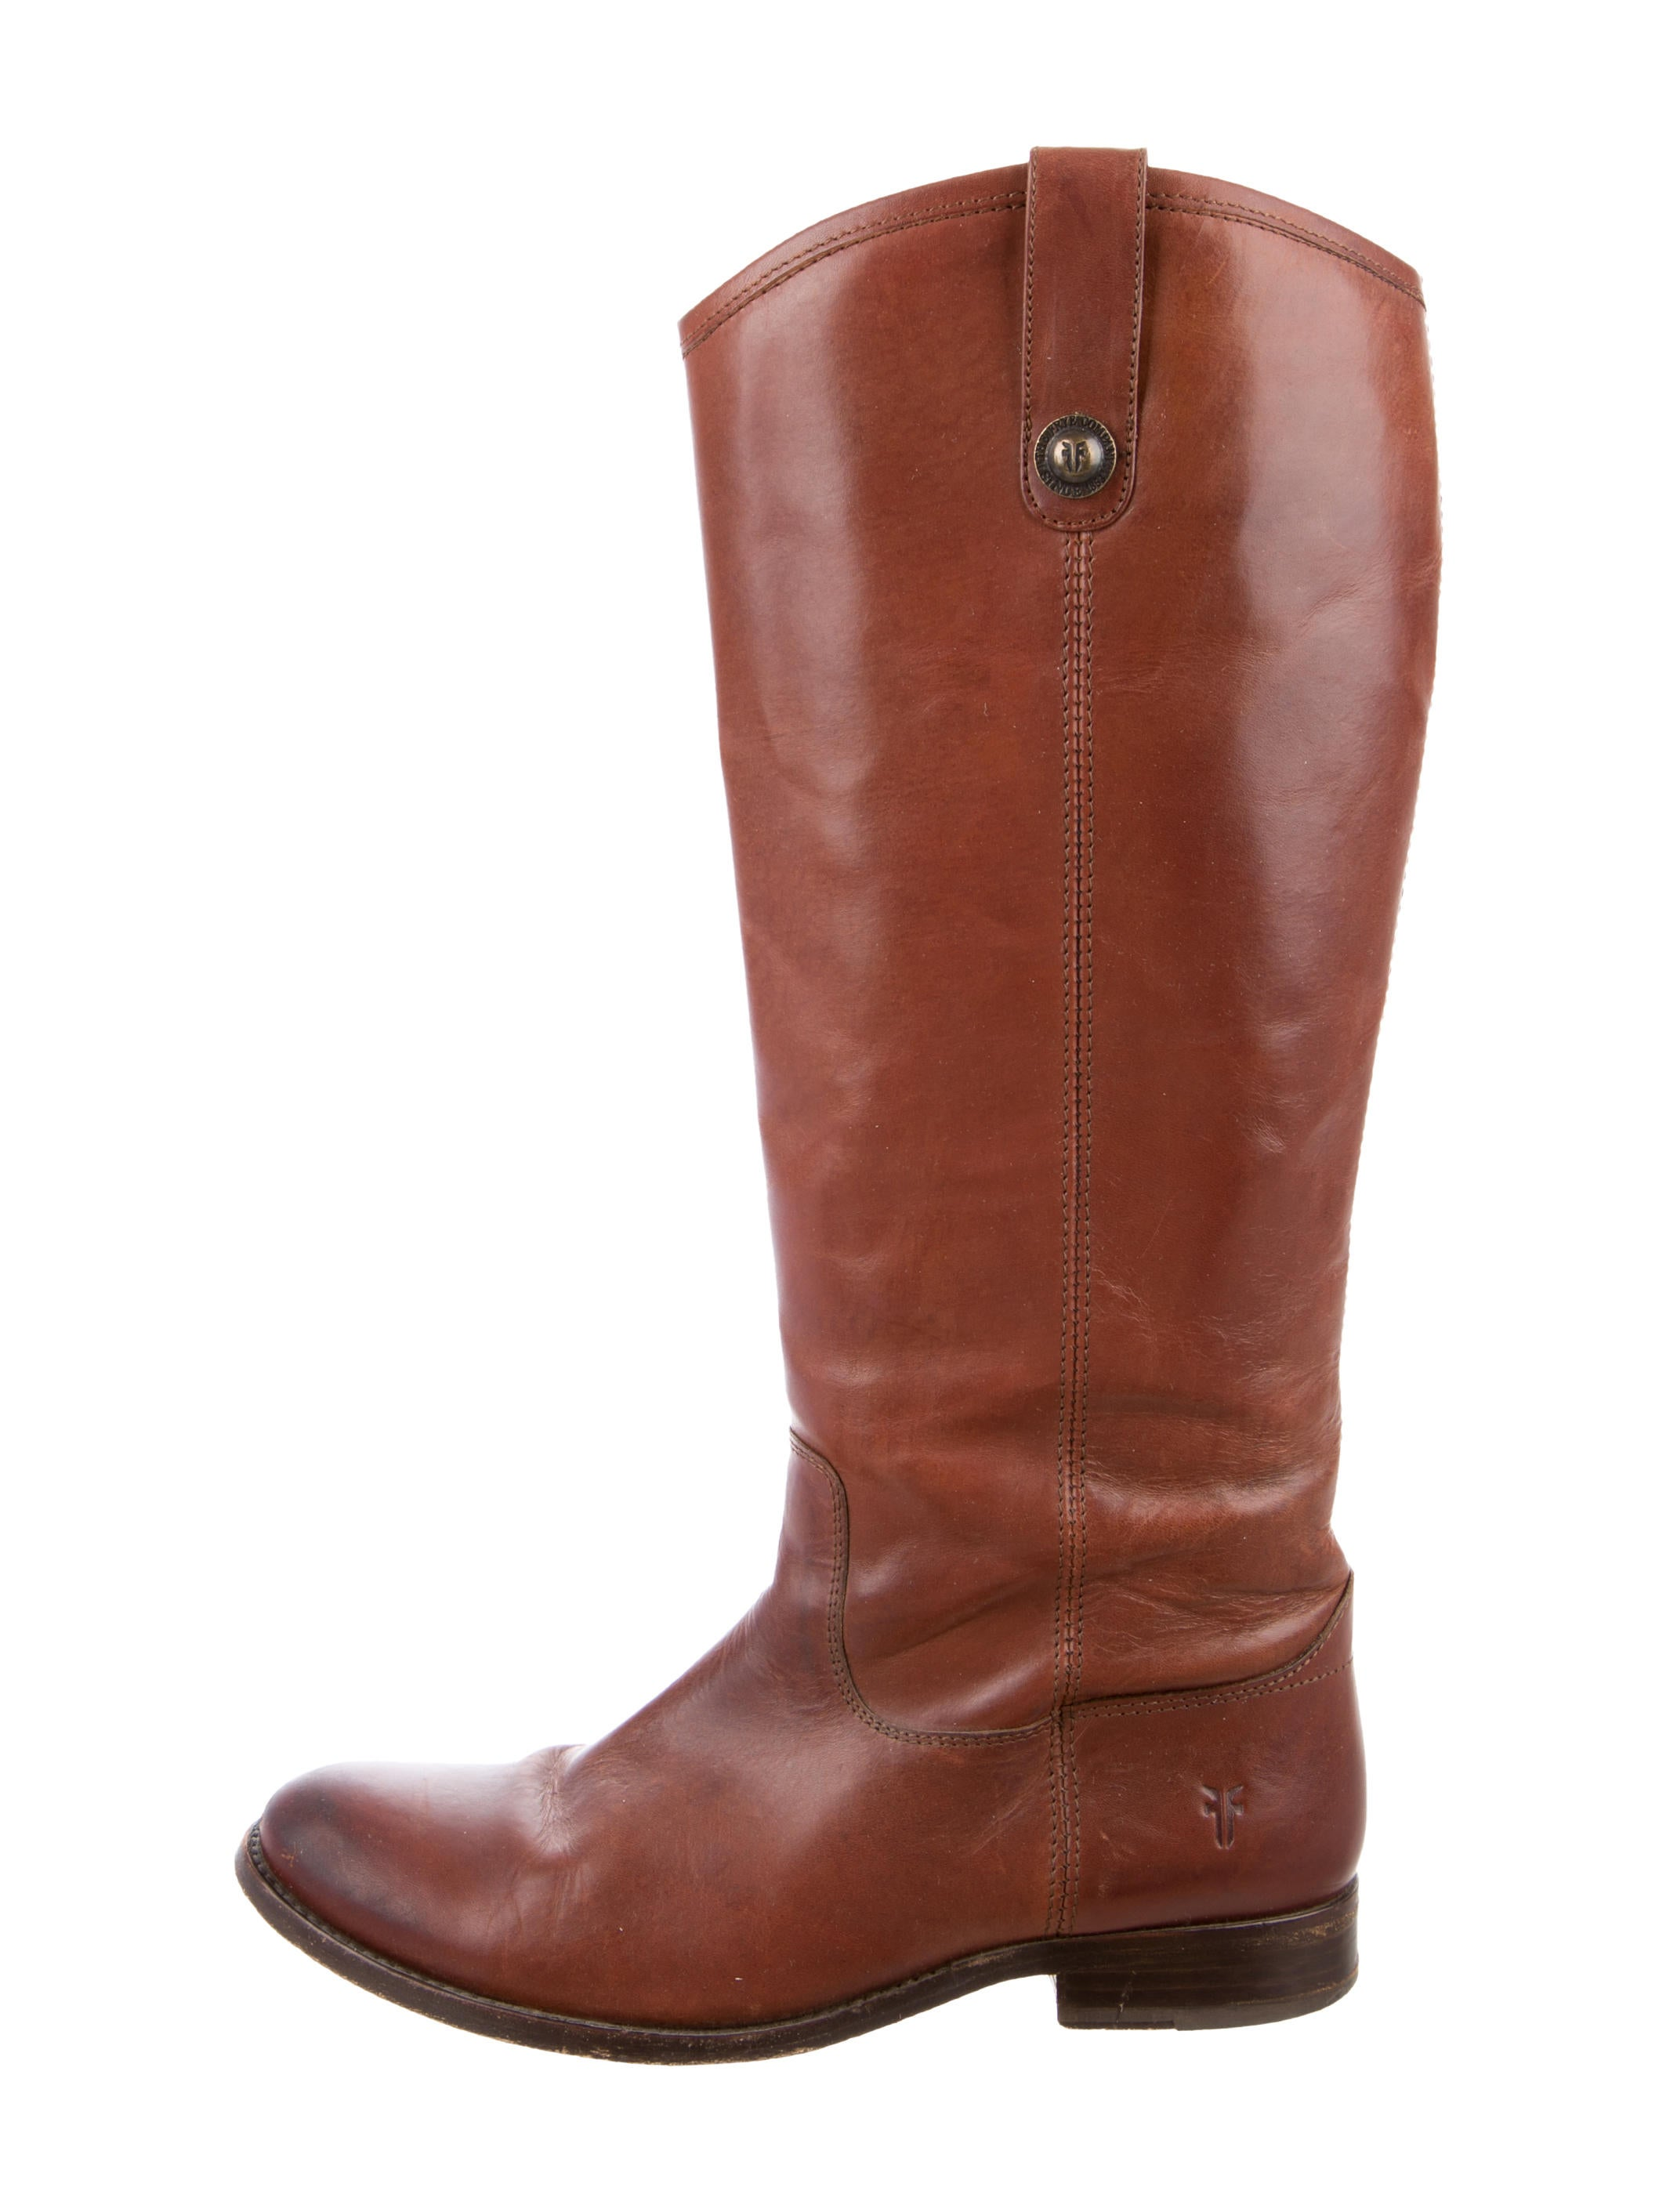 frye leather knee high boots shoes wf821207 the realreal